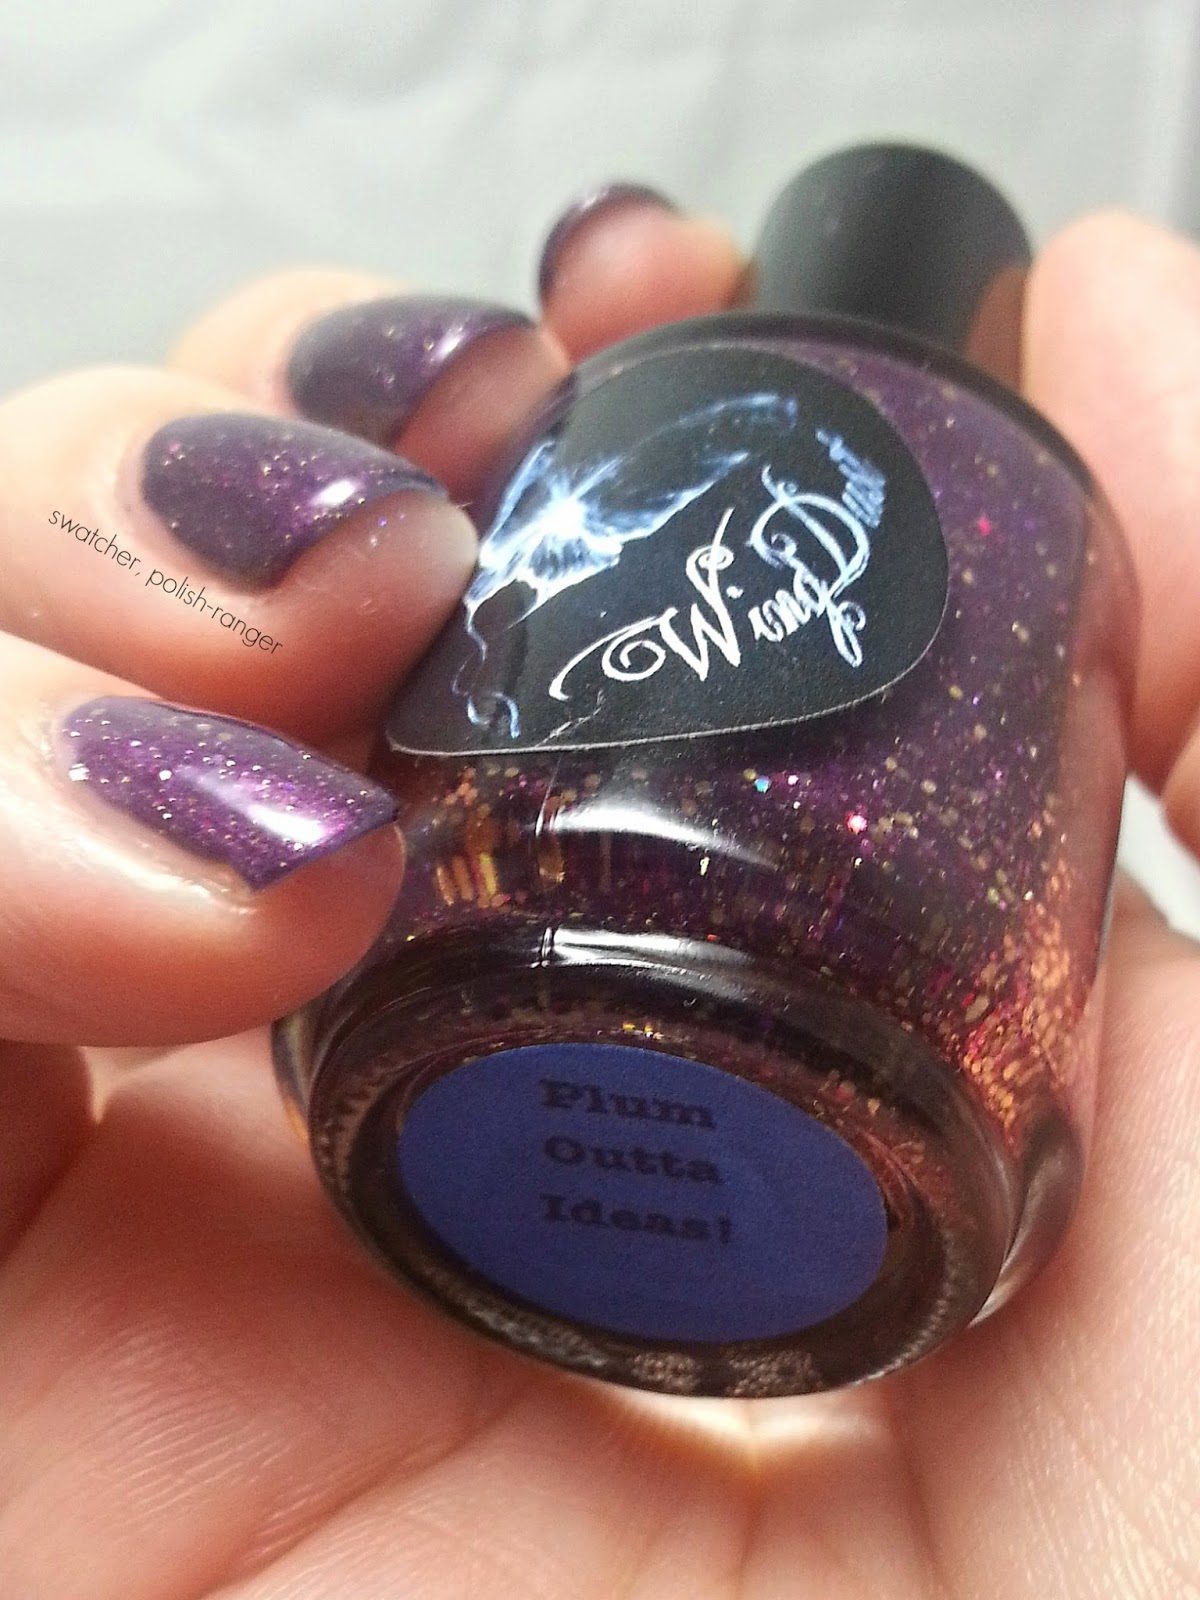 Wingdust Collections Plum Outta Ideas swatch